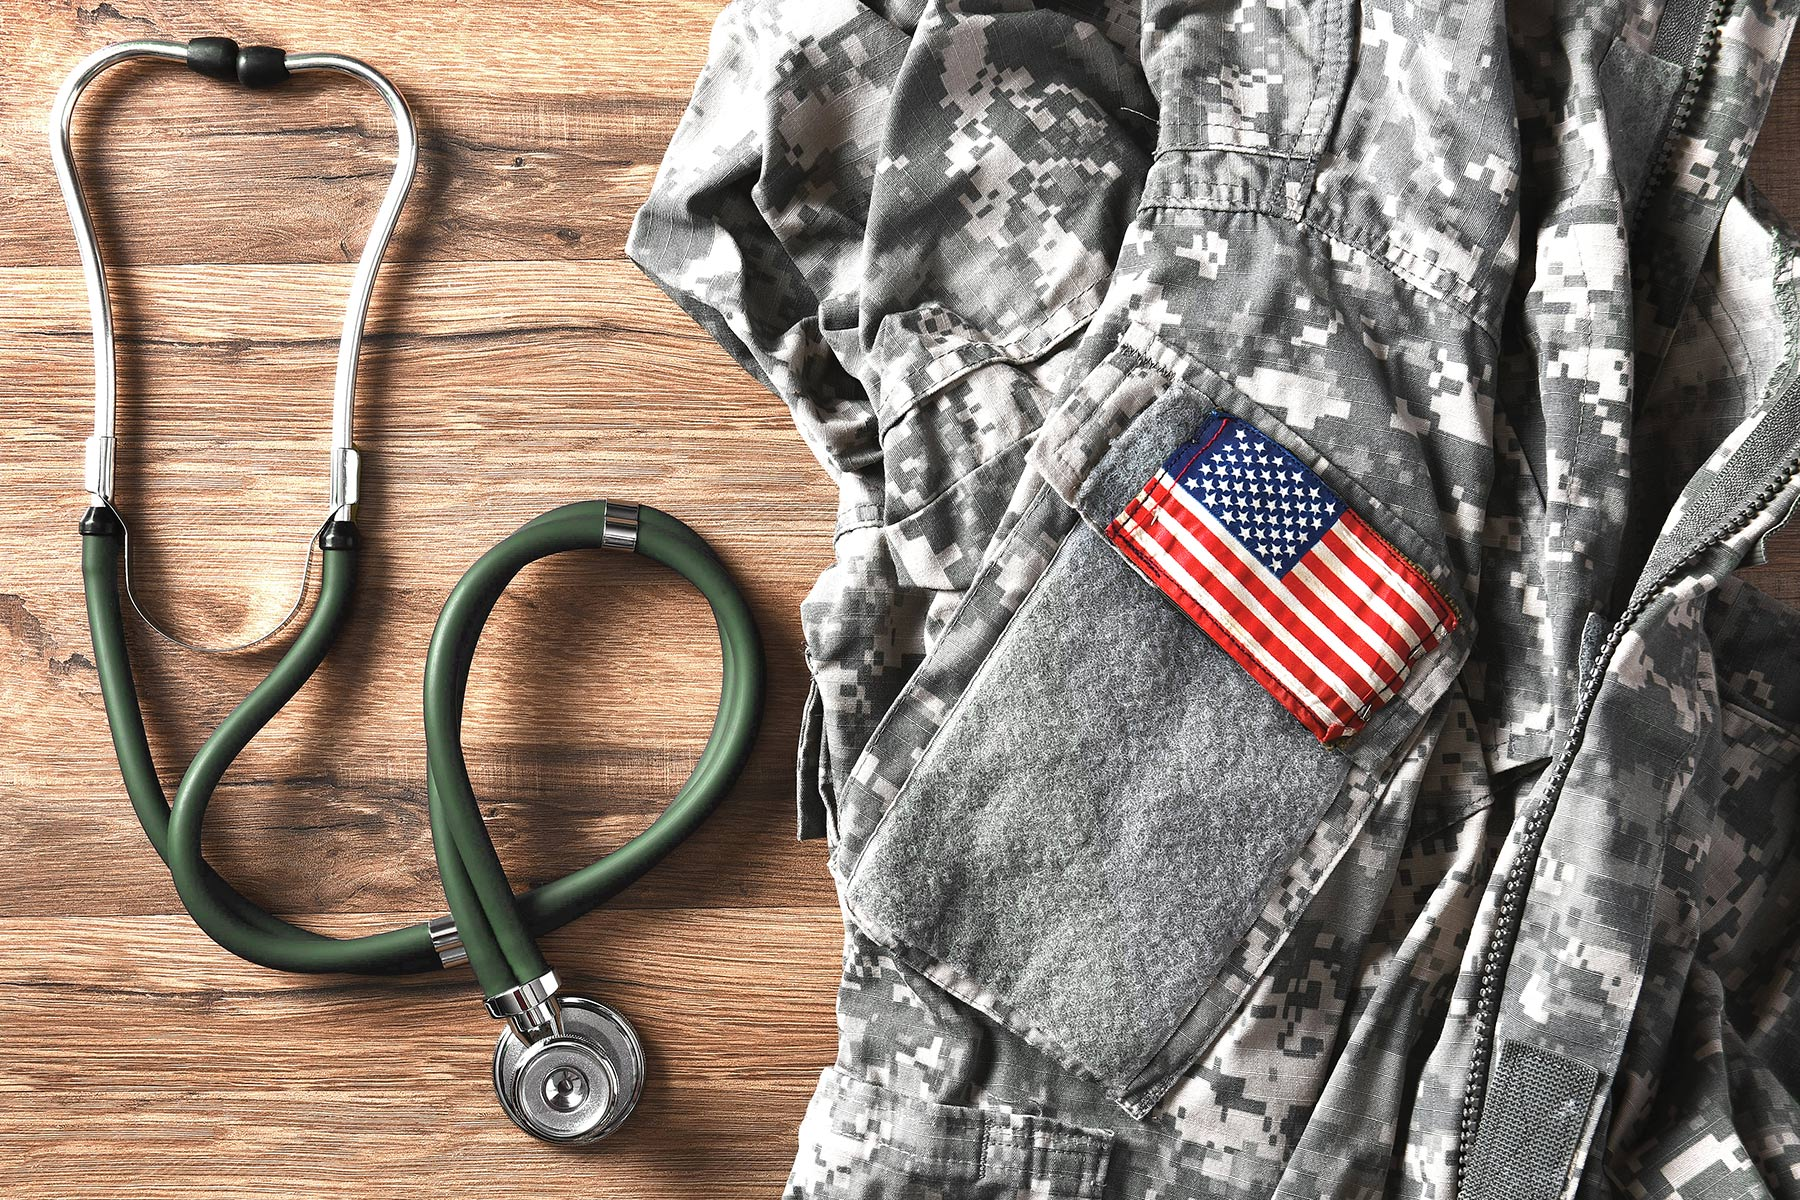 picture of stethoscope next to veteran jacket with American flag patch